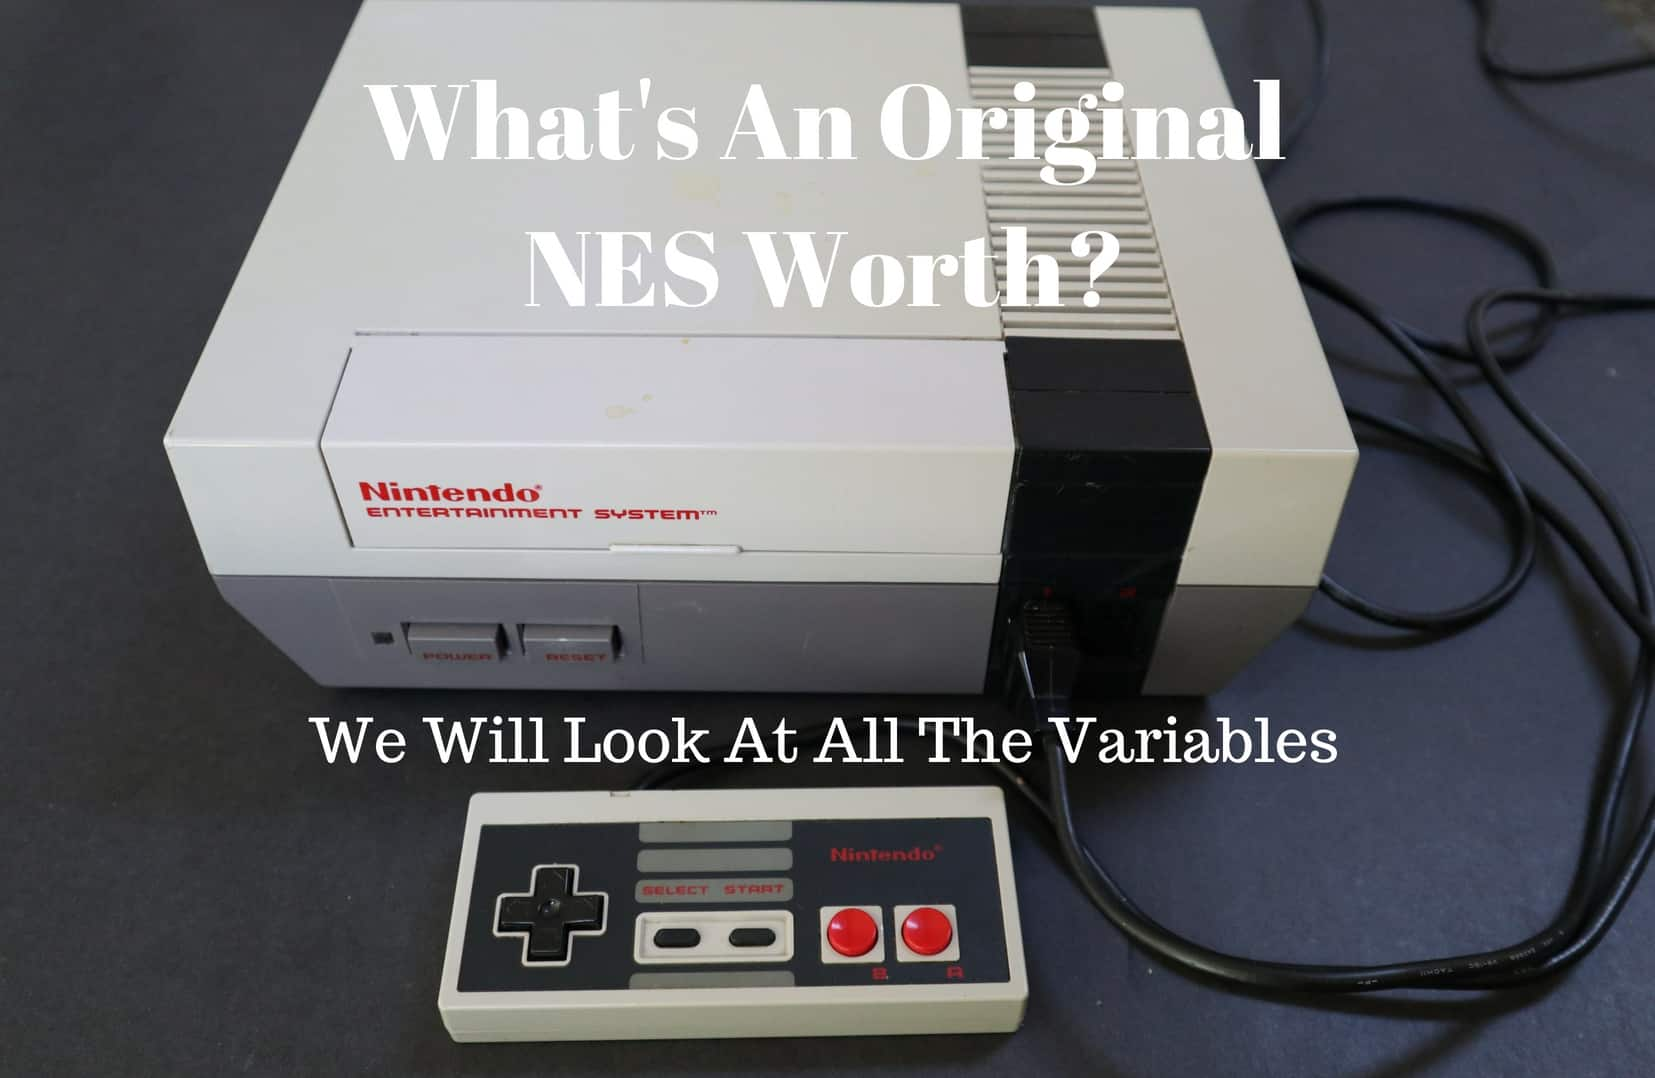 a picture of what an original nes is worth today